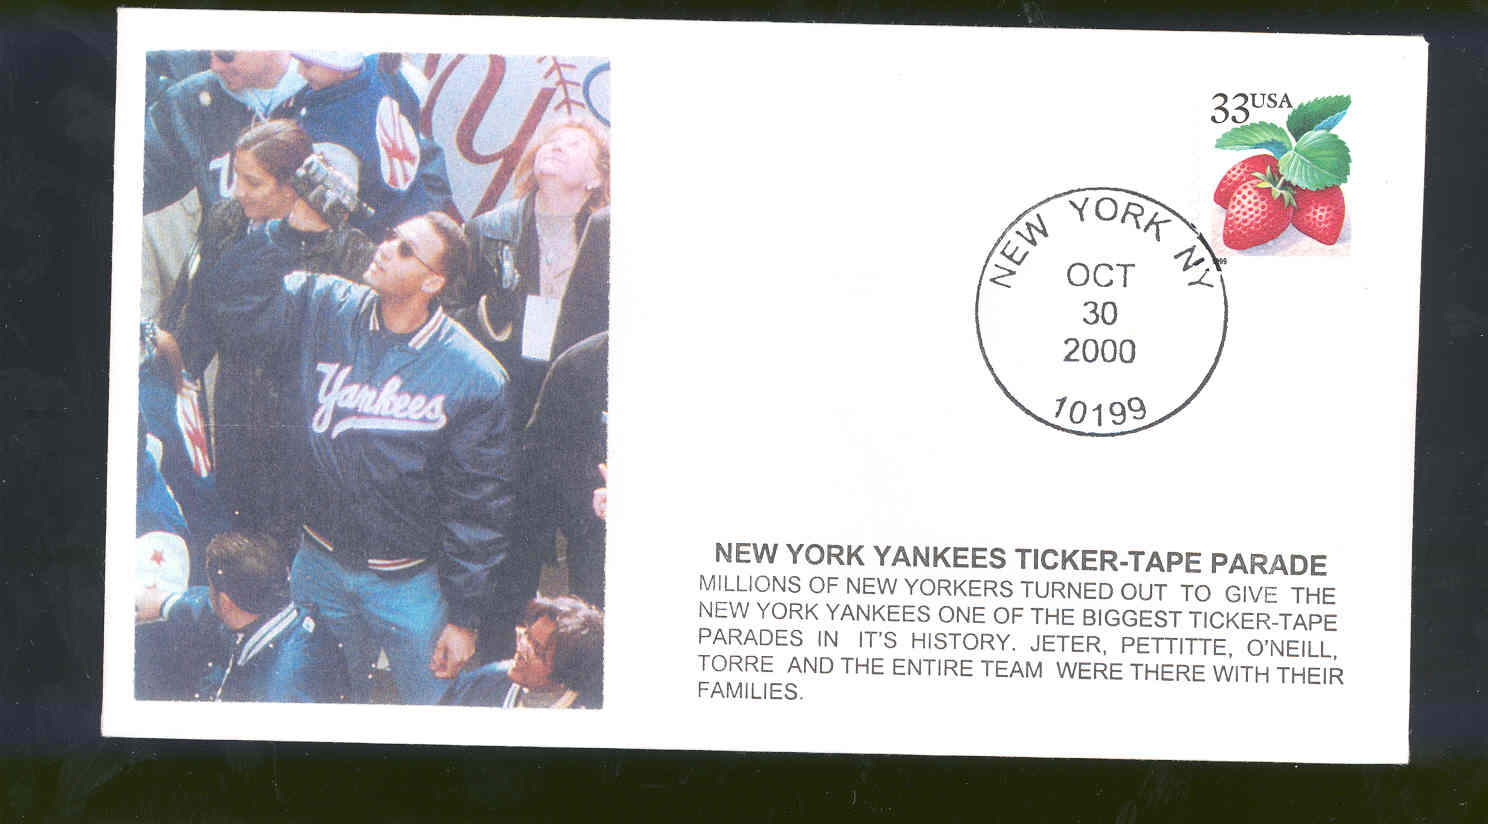 Oct 30,2000 First Day Cover Derek Jeter Yankees Ticker Tape Parade